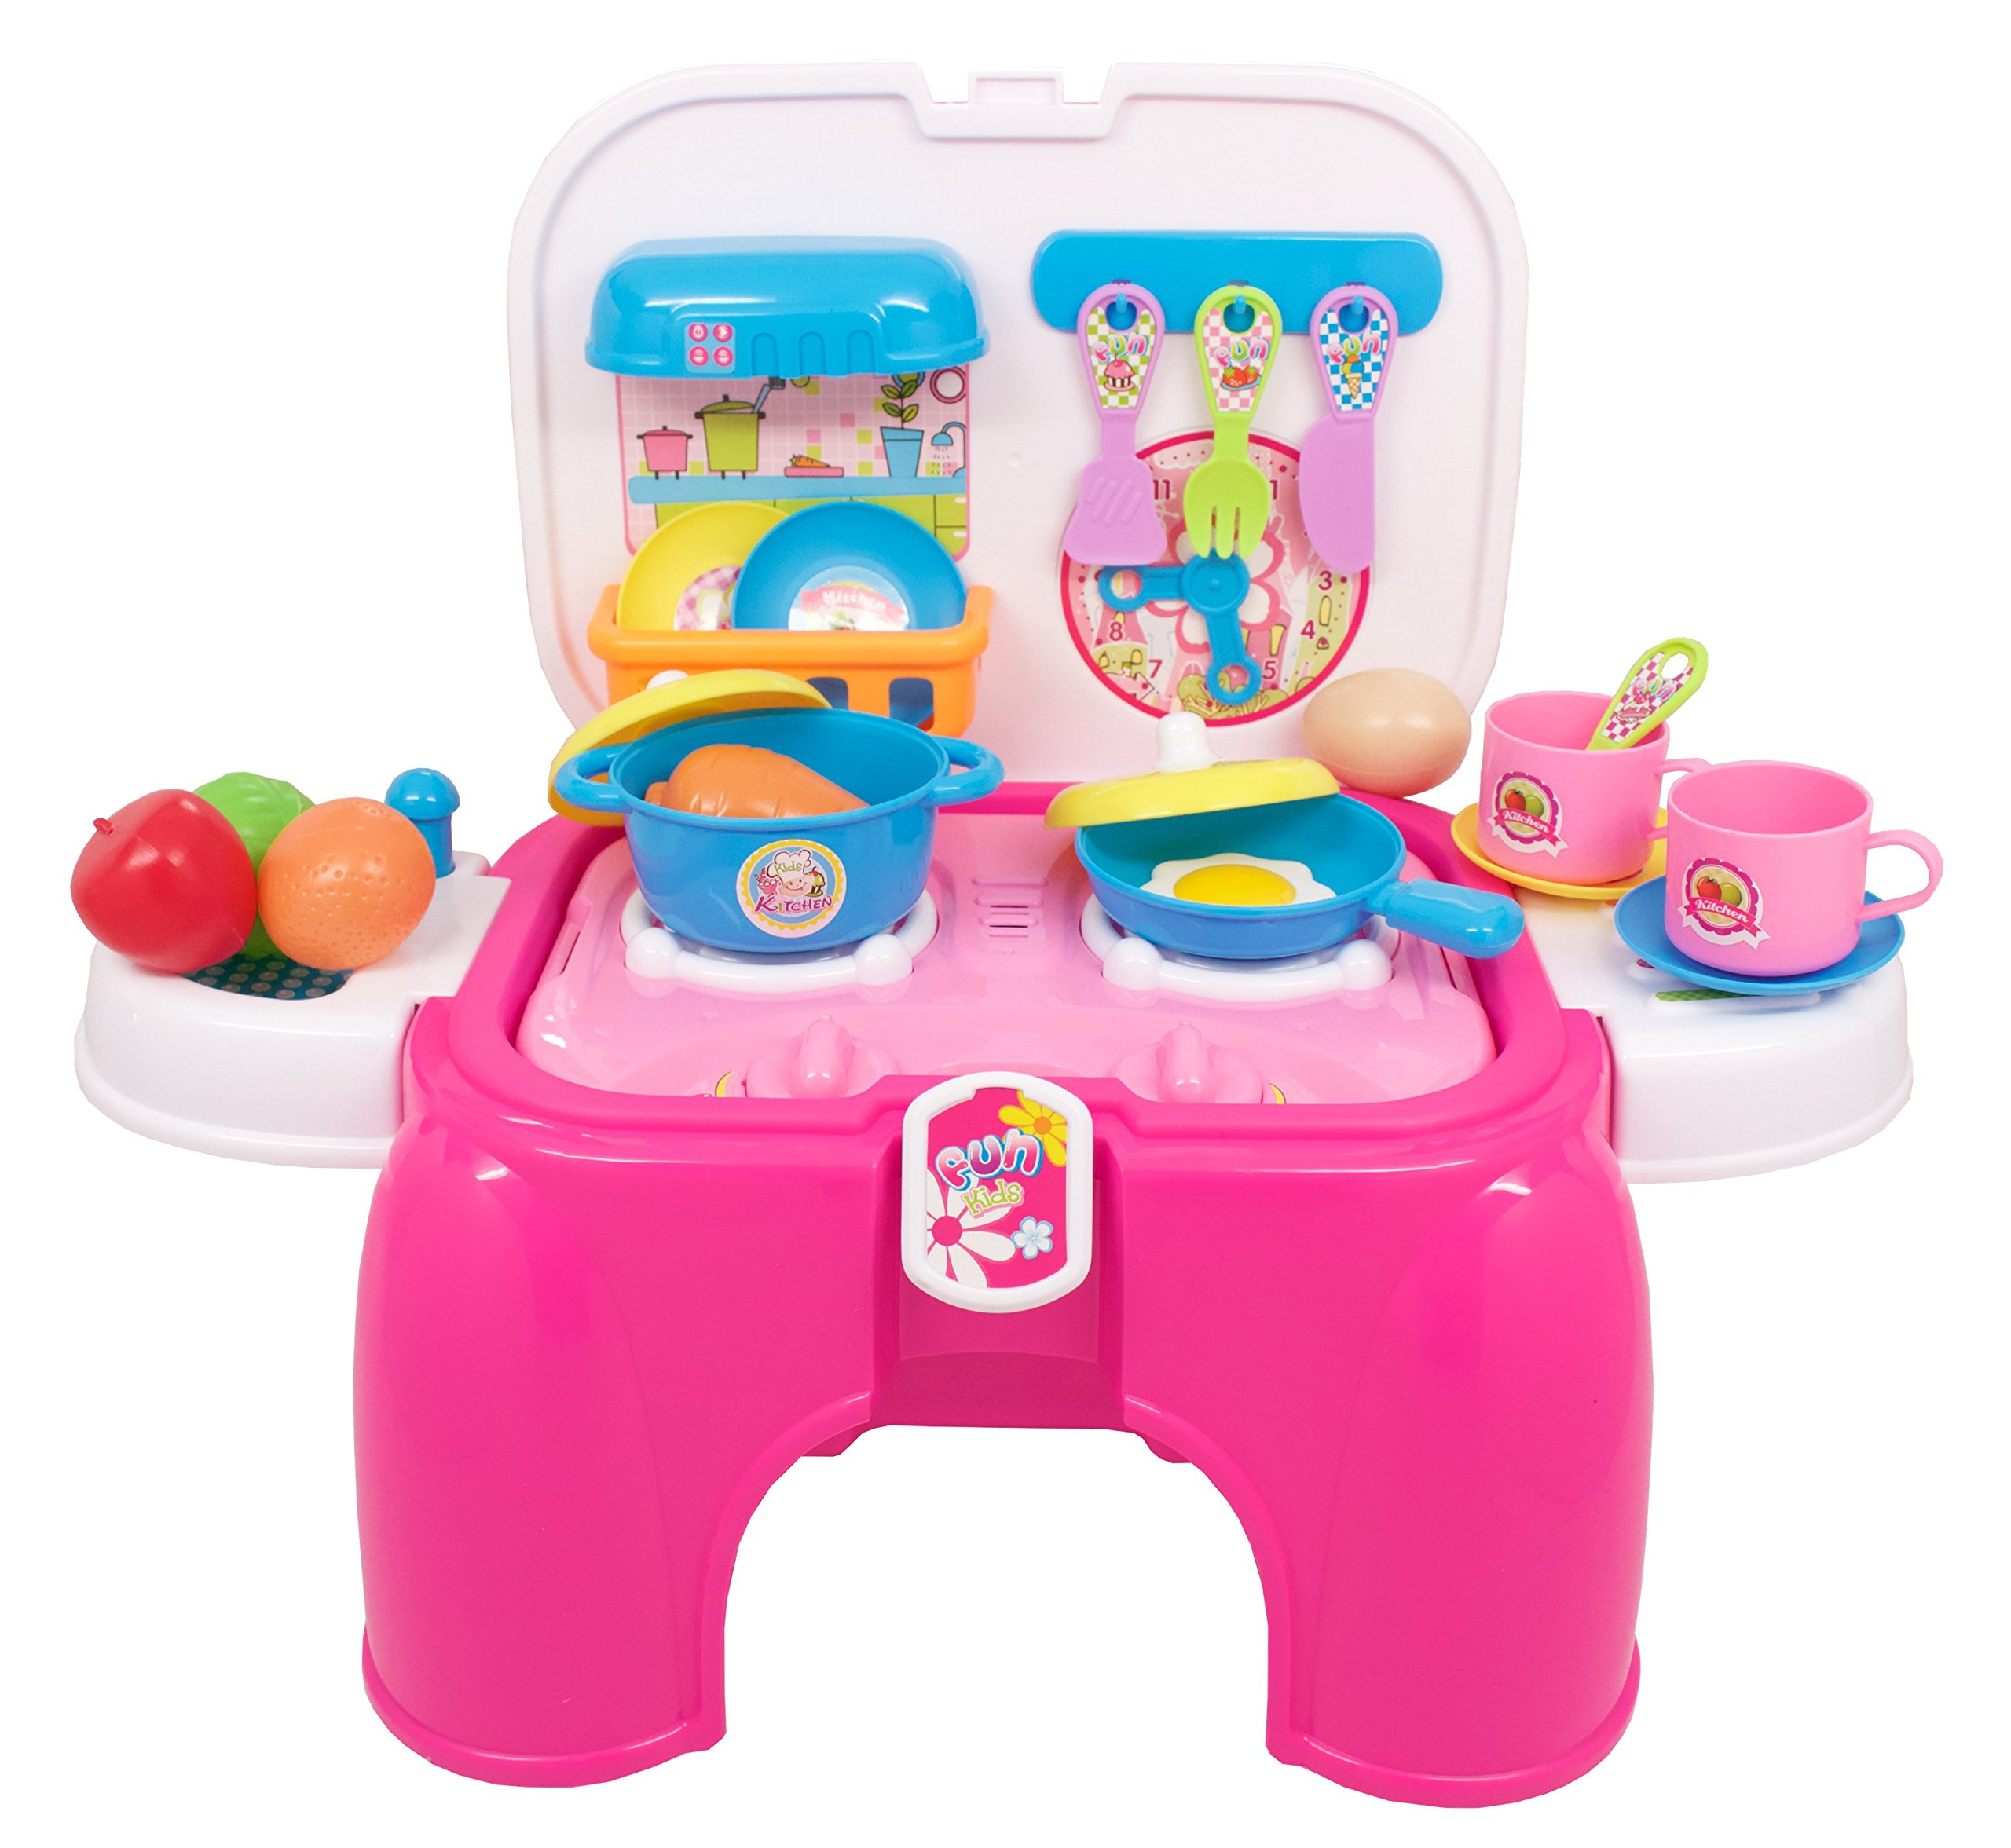 Techege Toys Convertible Cooking Kitchen Chair Converts to Stool for Multiple Uses